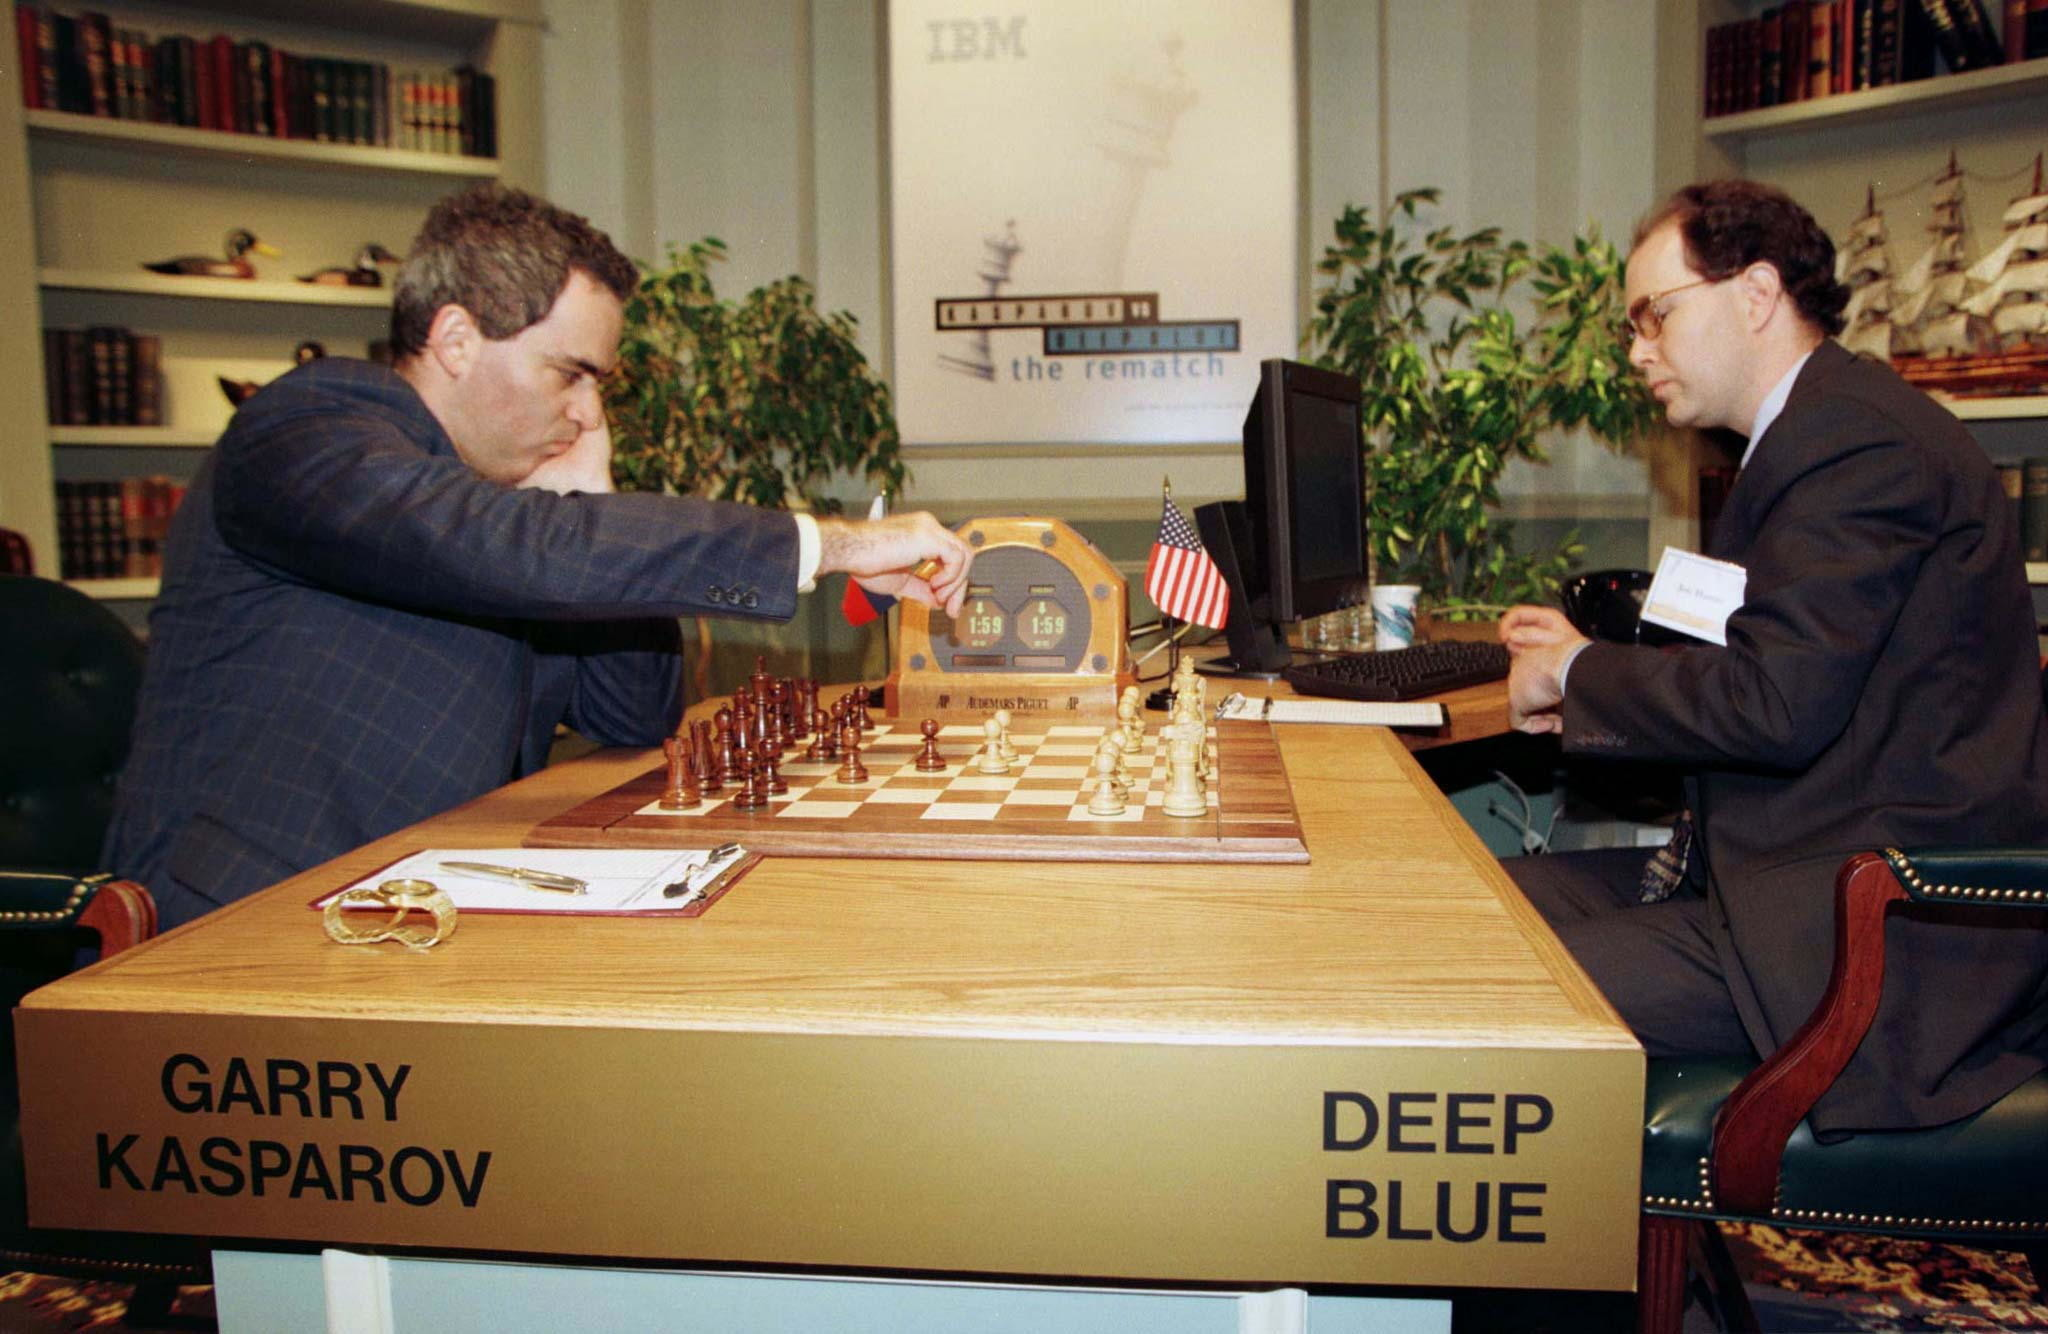 World chess champion Garry Kasparov (L) reaches to make a move early in game six of the six-game $1.1 million chess match series against IBM supercomputer Deep Blue operated by IBM's Joe Hoane (R) in New York, May 11. The supercomputer made chess history when it defeated Kasparov for an overall victory in their six game re-match, the first time a computer has triumphed over a reigning world champion in a classical match. Kasparov resigned after 19 moves.CHESS DEEPBLUE - RTR3MU9